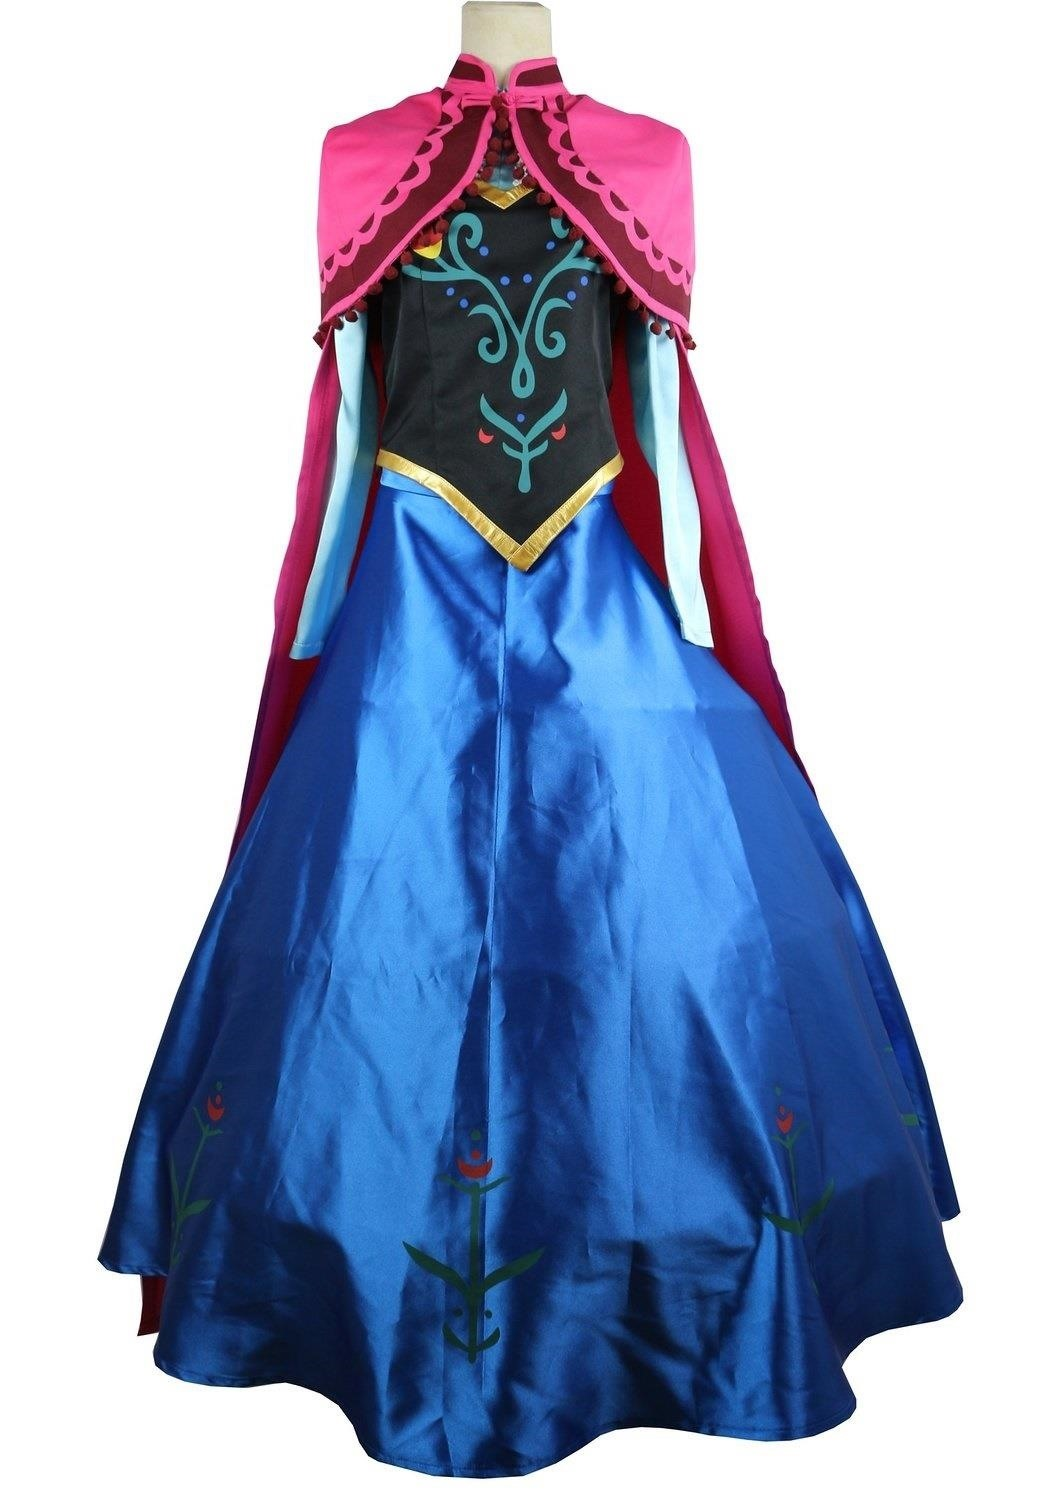 Diy princess anna costume makeup from disneys frozen halloween dont have time for diy just buy solutioingenieria Choice Image